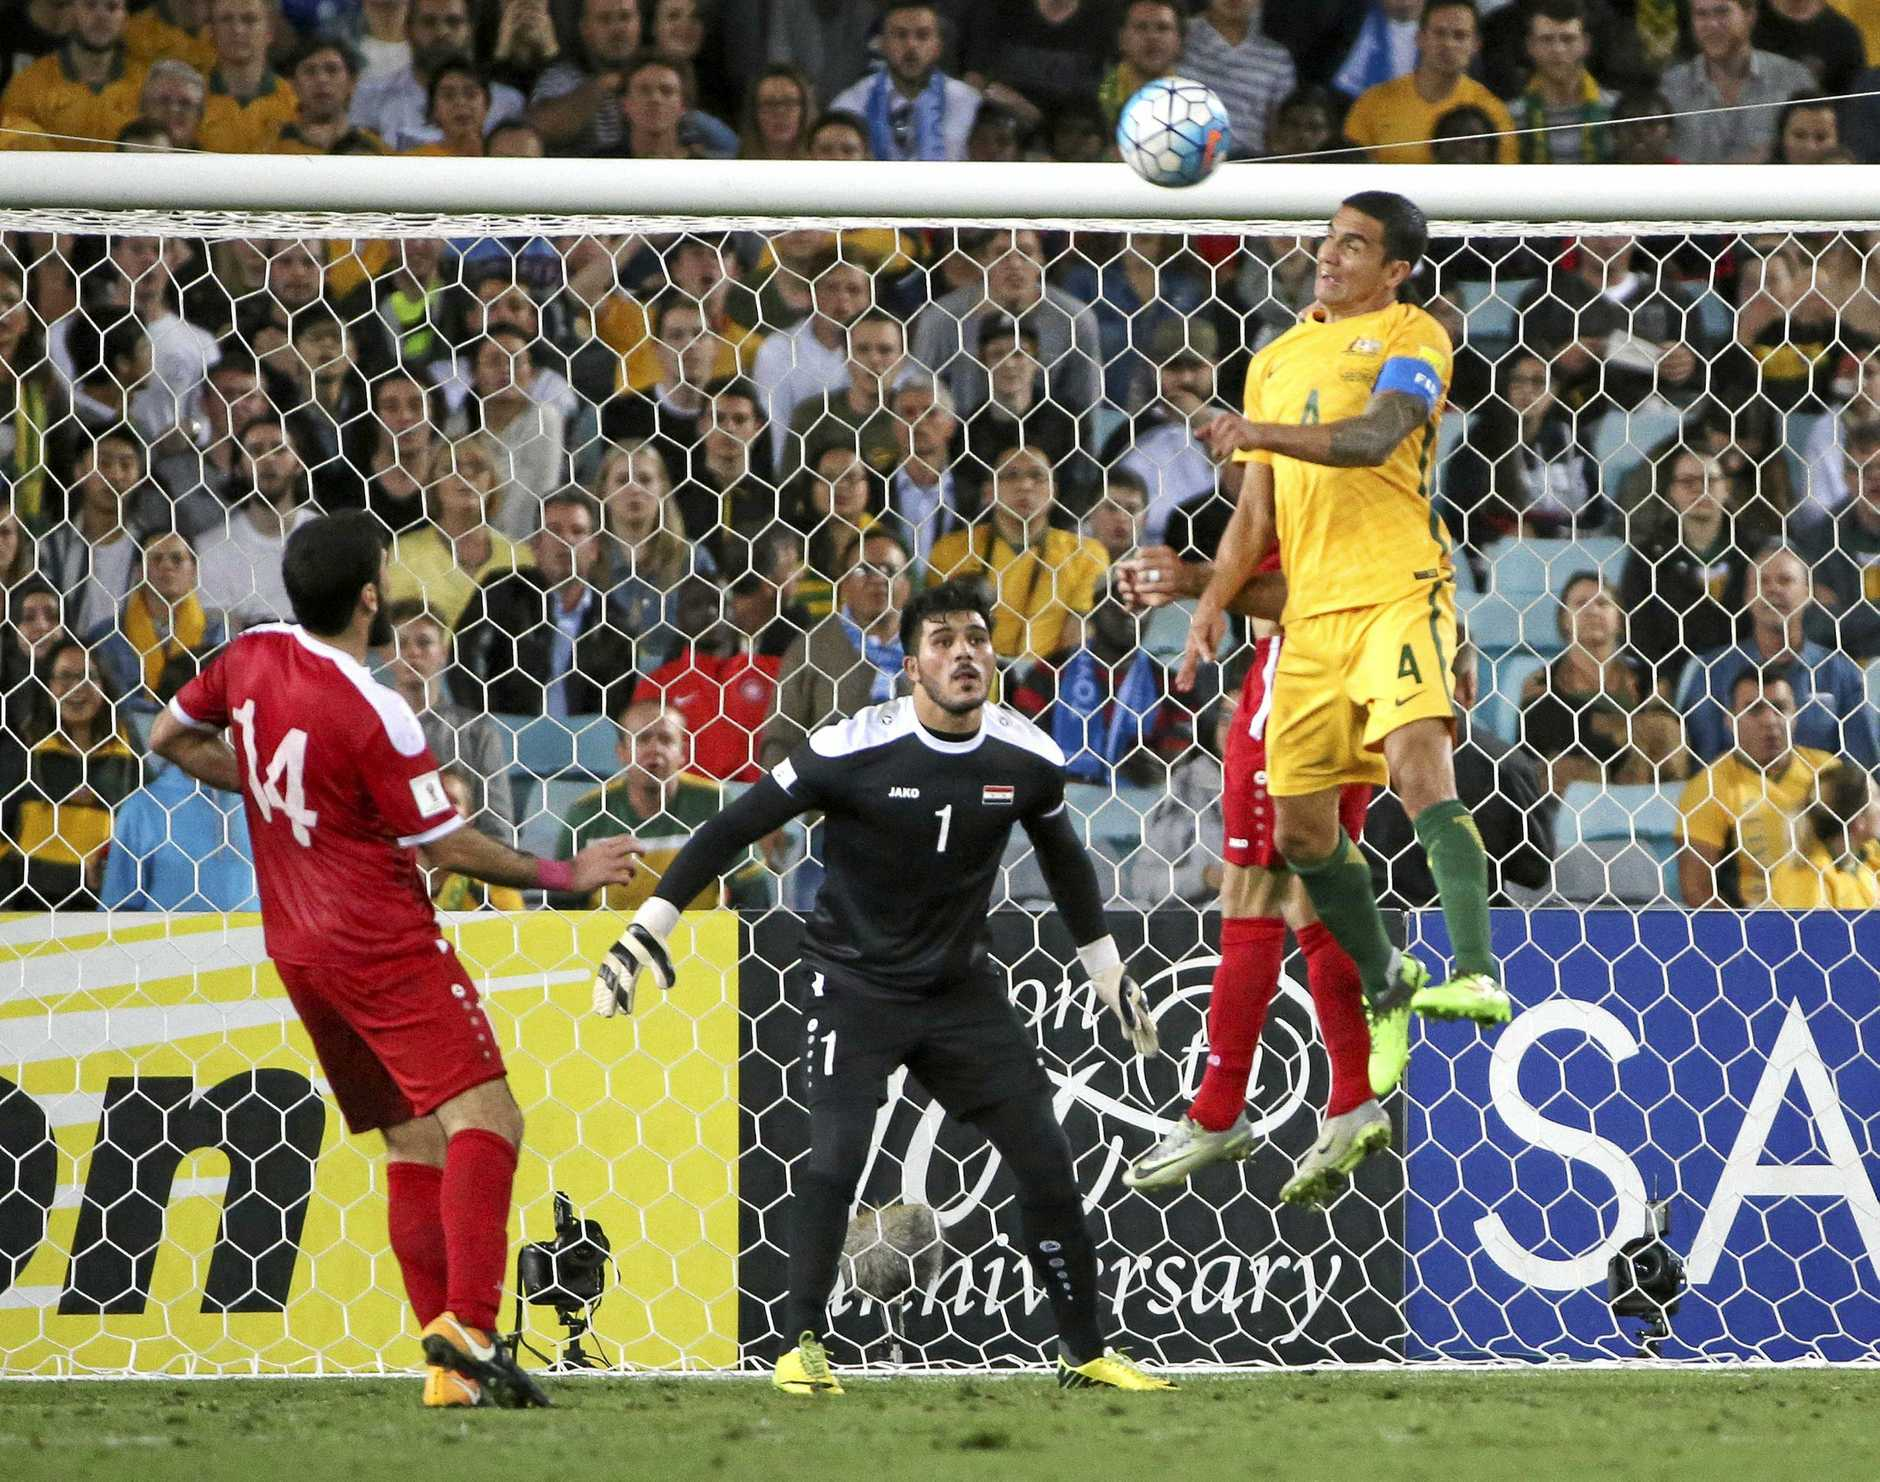 TRADEMARK: Australia's Tim Cahill, right, scores another towering header against Syria during their World Cup qualifying match in Sydney, Australia, Tuesday, Oct. 10, 2017.